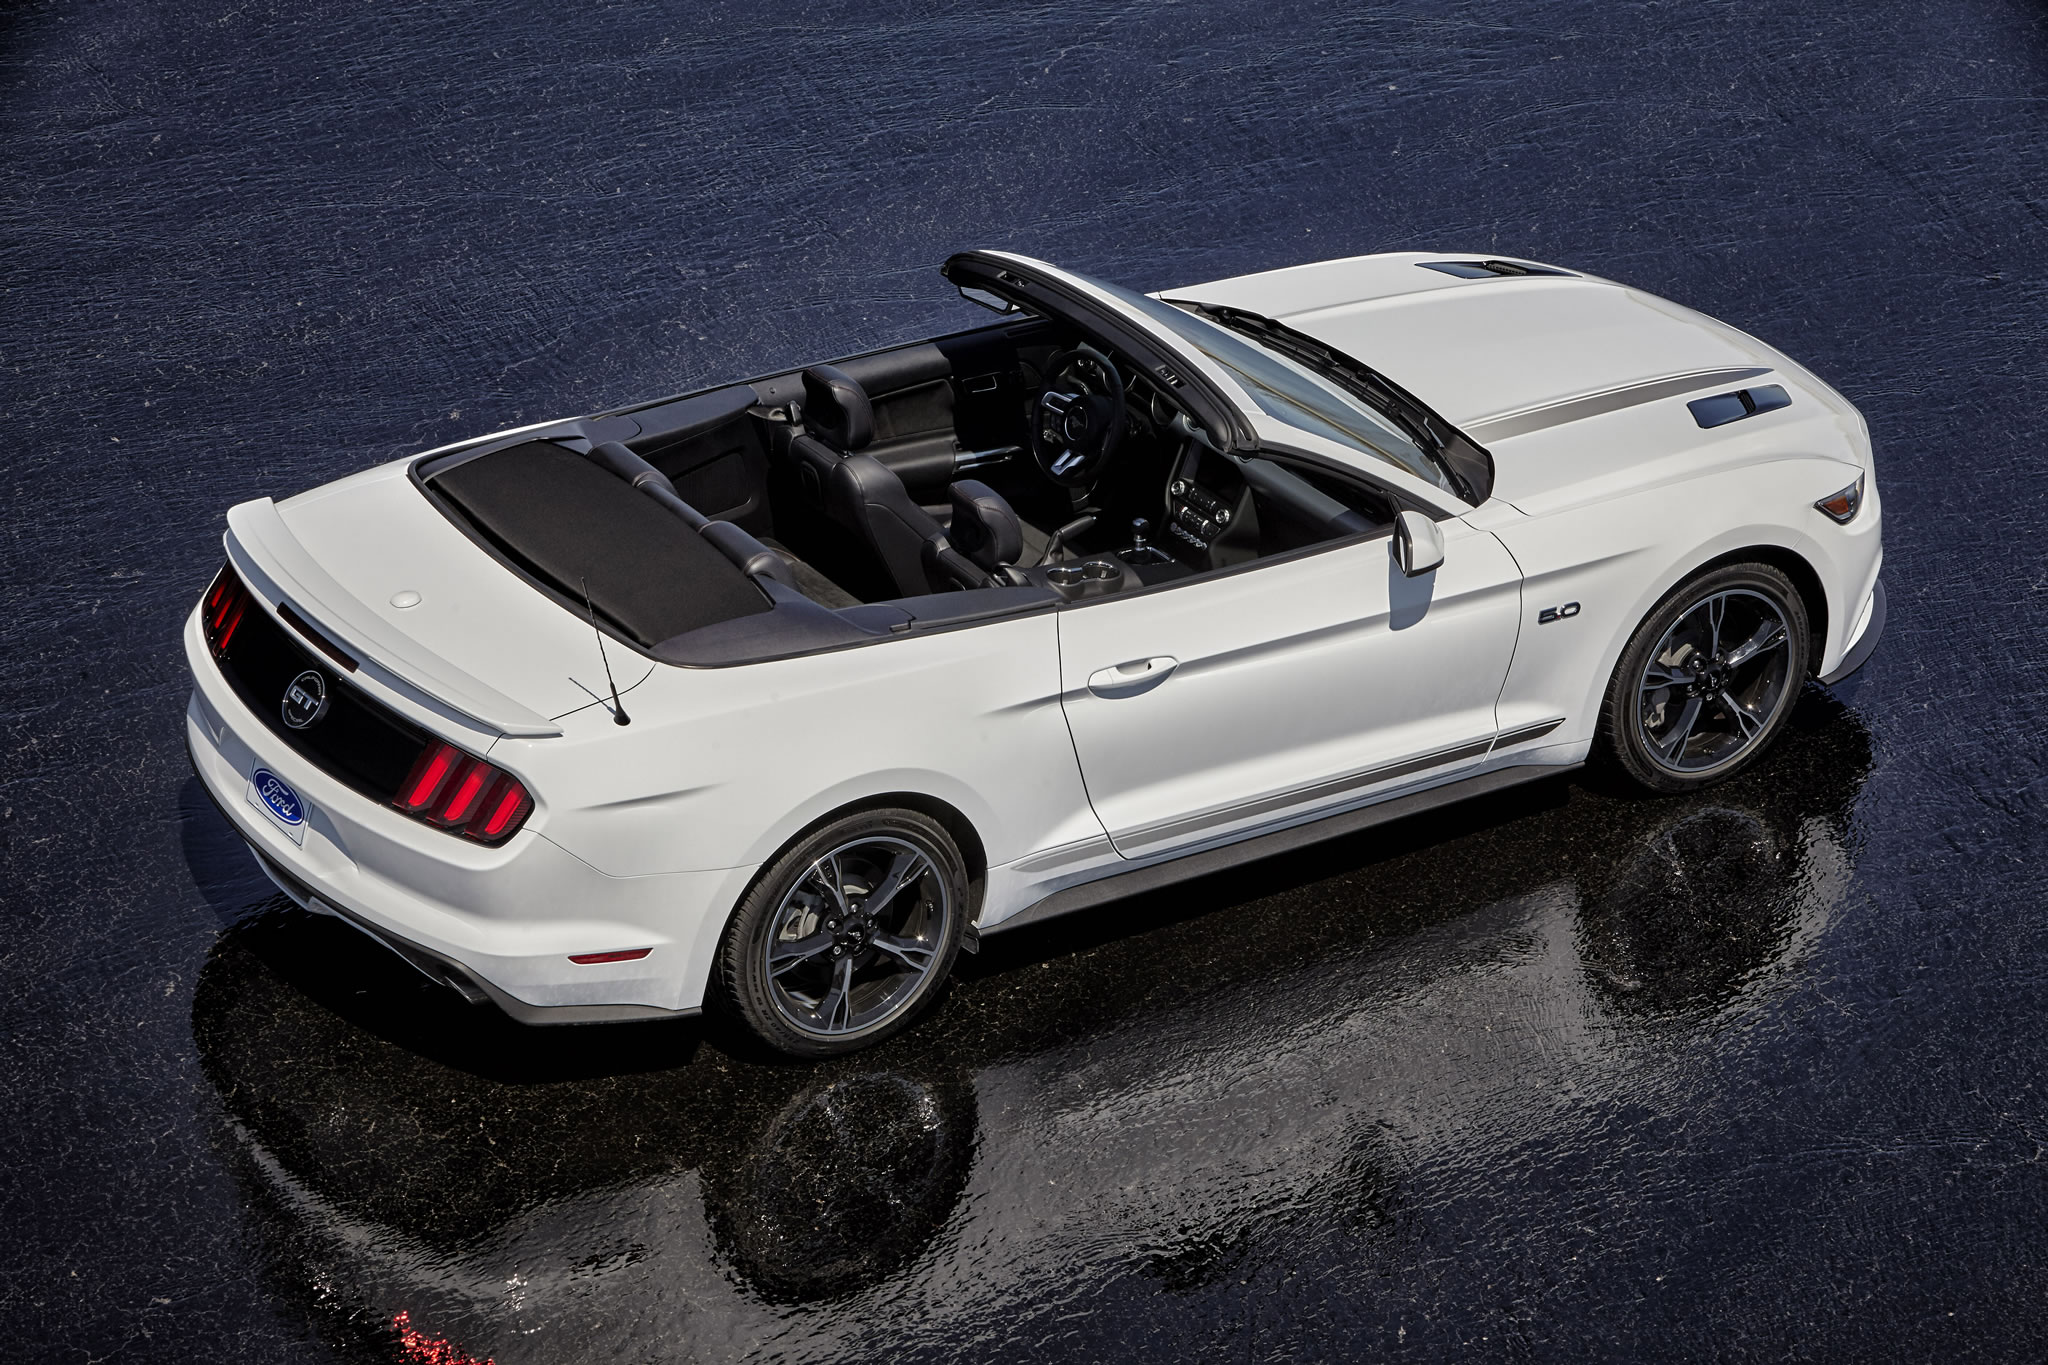 2016 Ford Mustang Gt Convertible Rear Photo Oxford